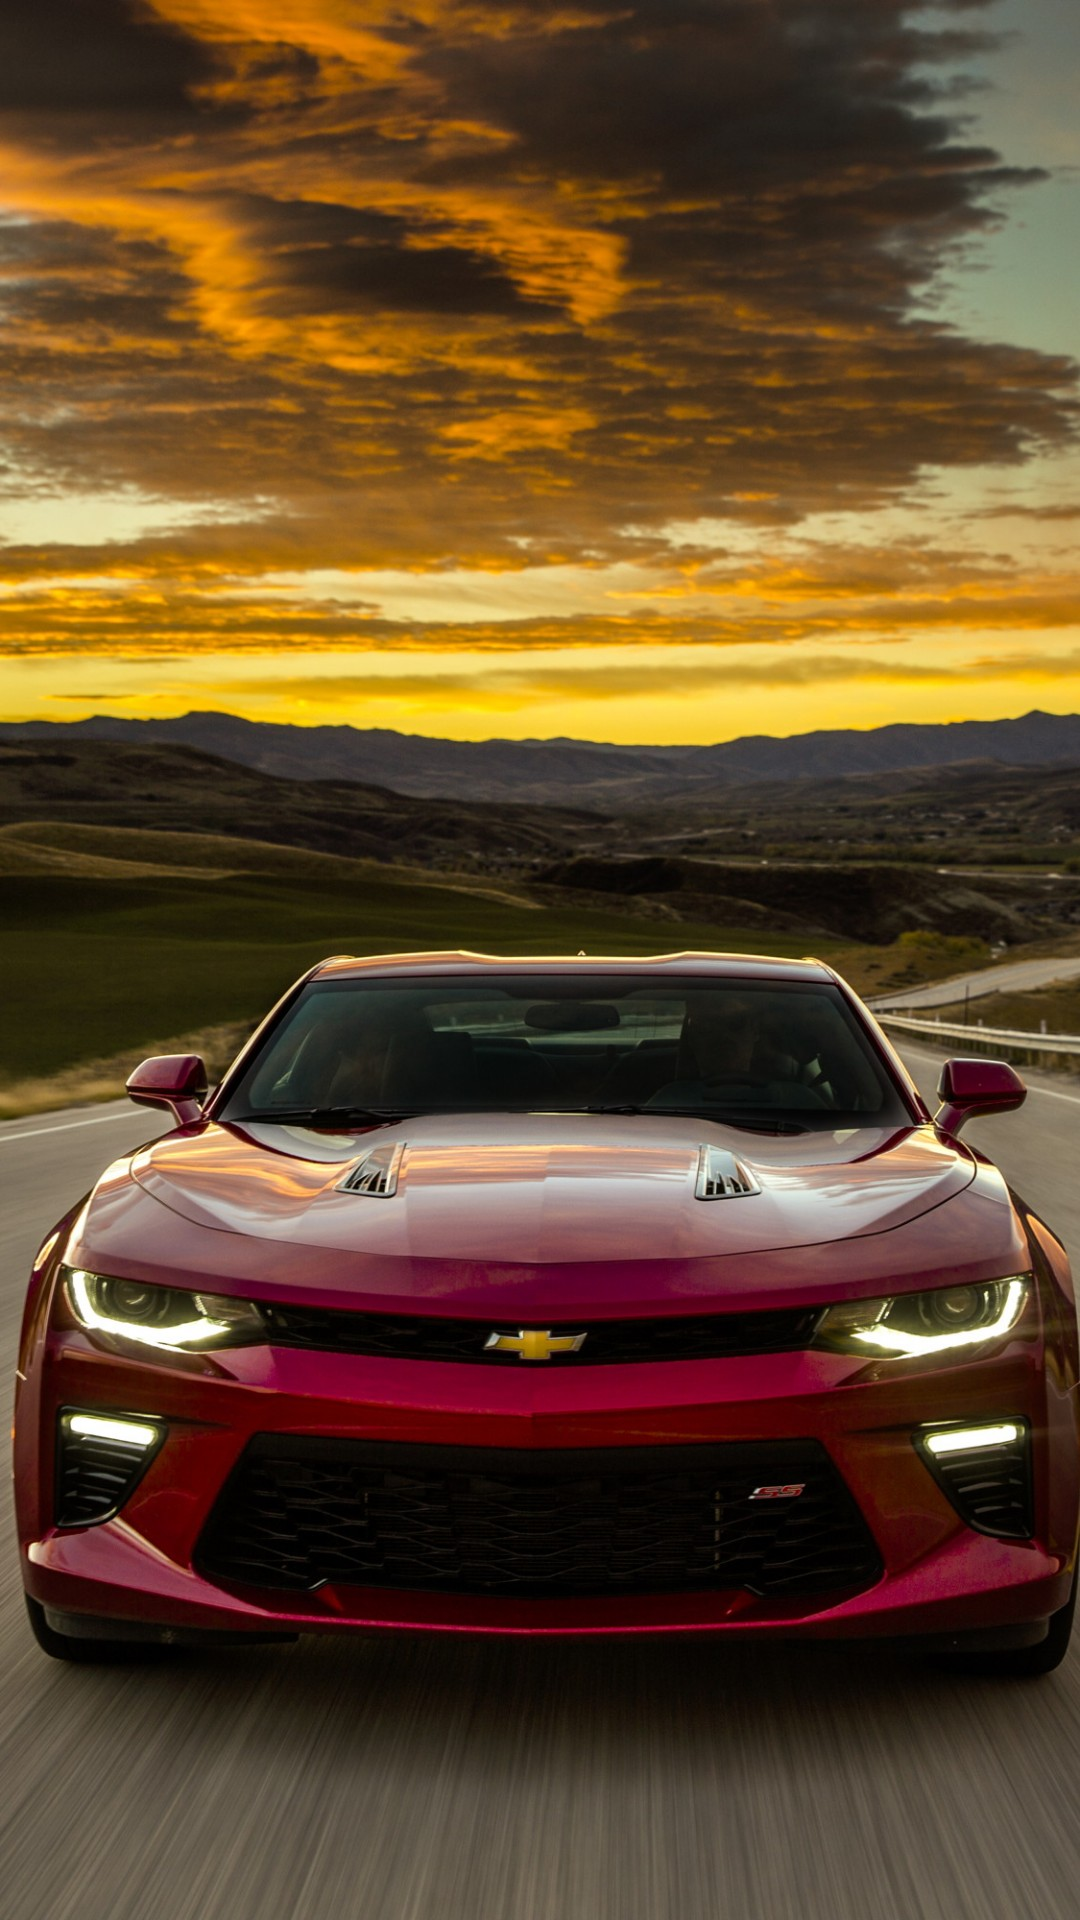 Wallpaper Chevrolet Camaro Europe version, red, sunset ...